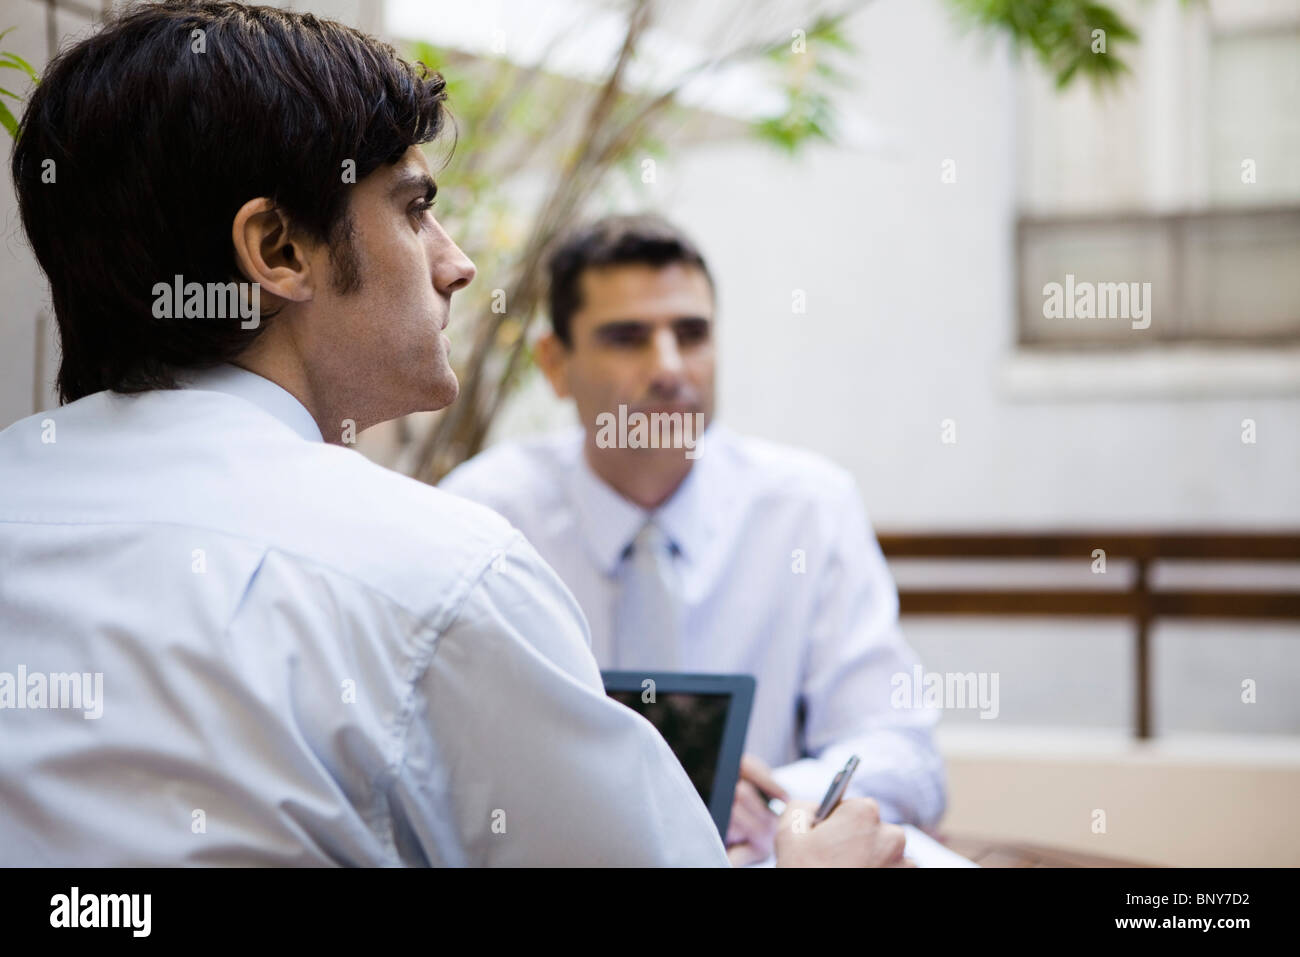 Businessman contemplatively looking away - Stock Image